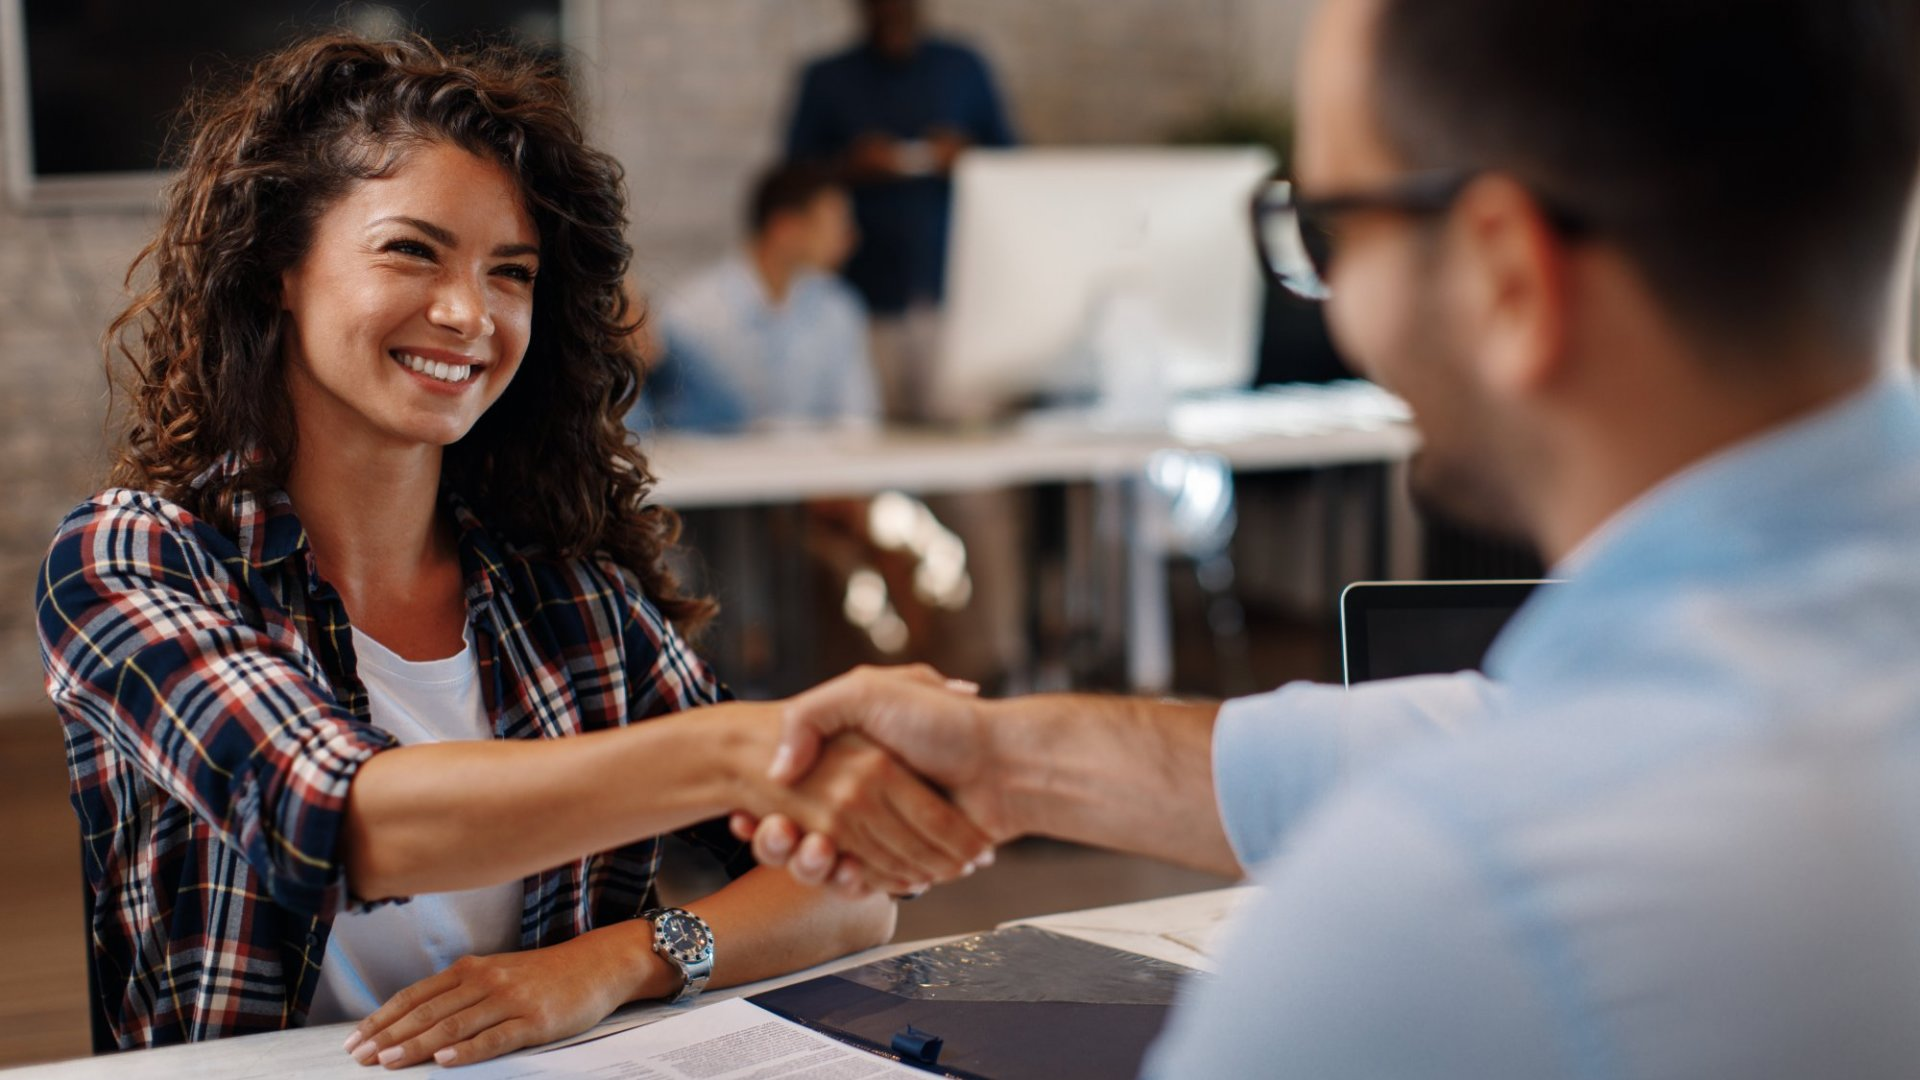 New Job? Here Are 8 Ways to Make a Great Impression in Your First Month